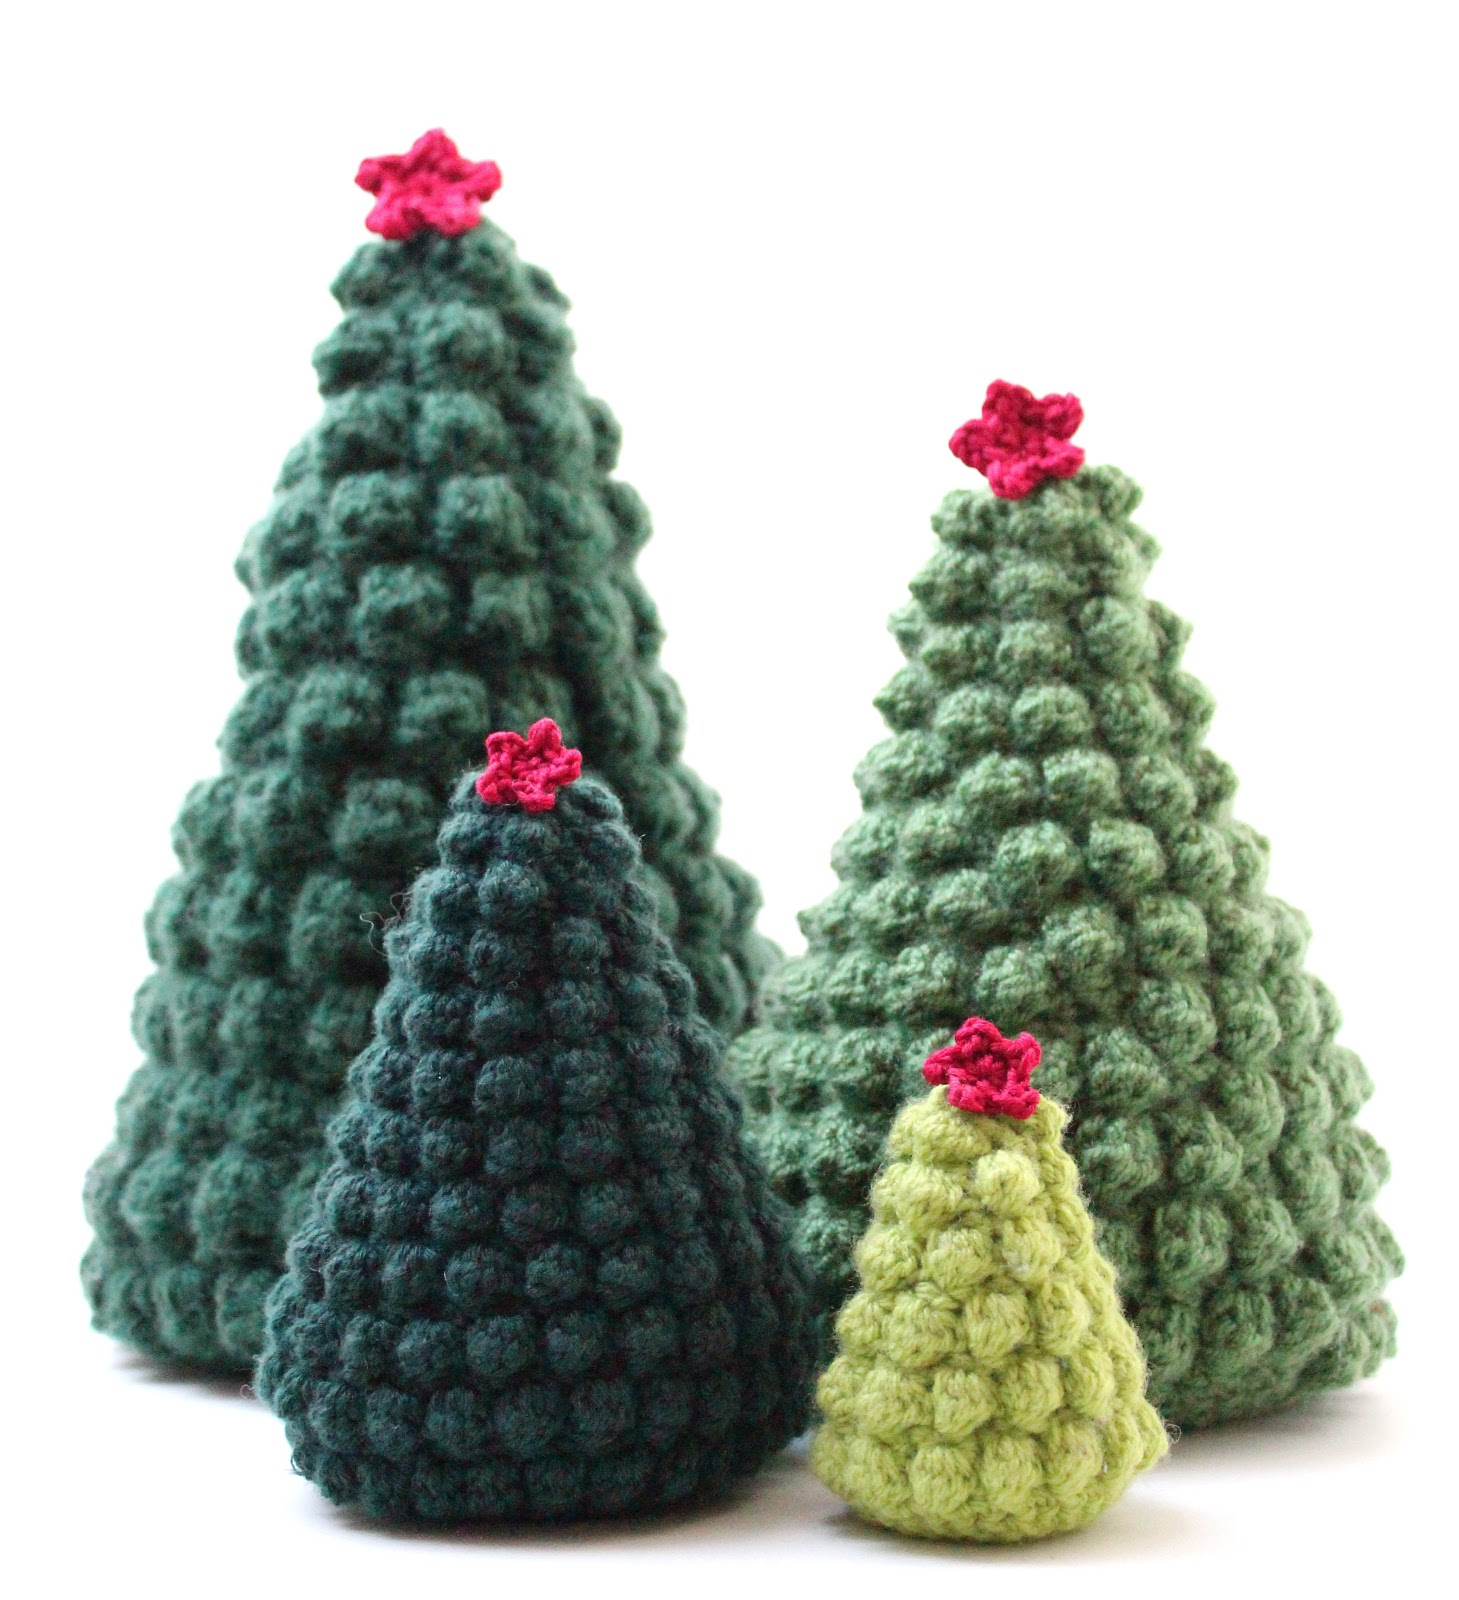 Crochet Pattern For Xmas Tree : According to Matt...: Creative Christmas: Crocheted ...